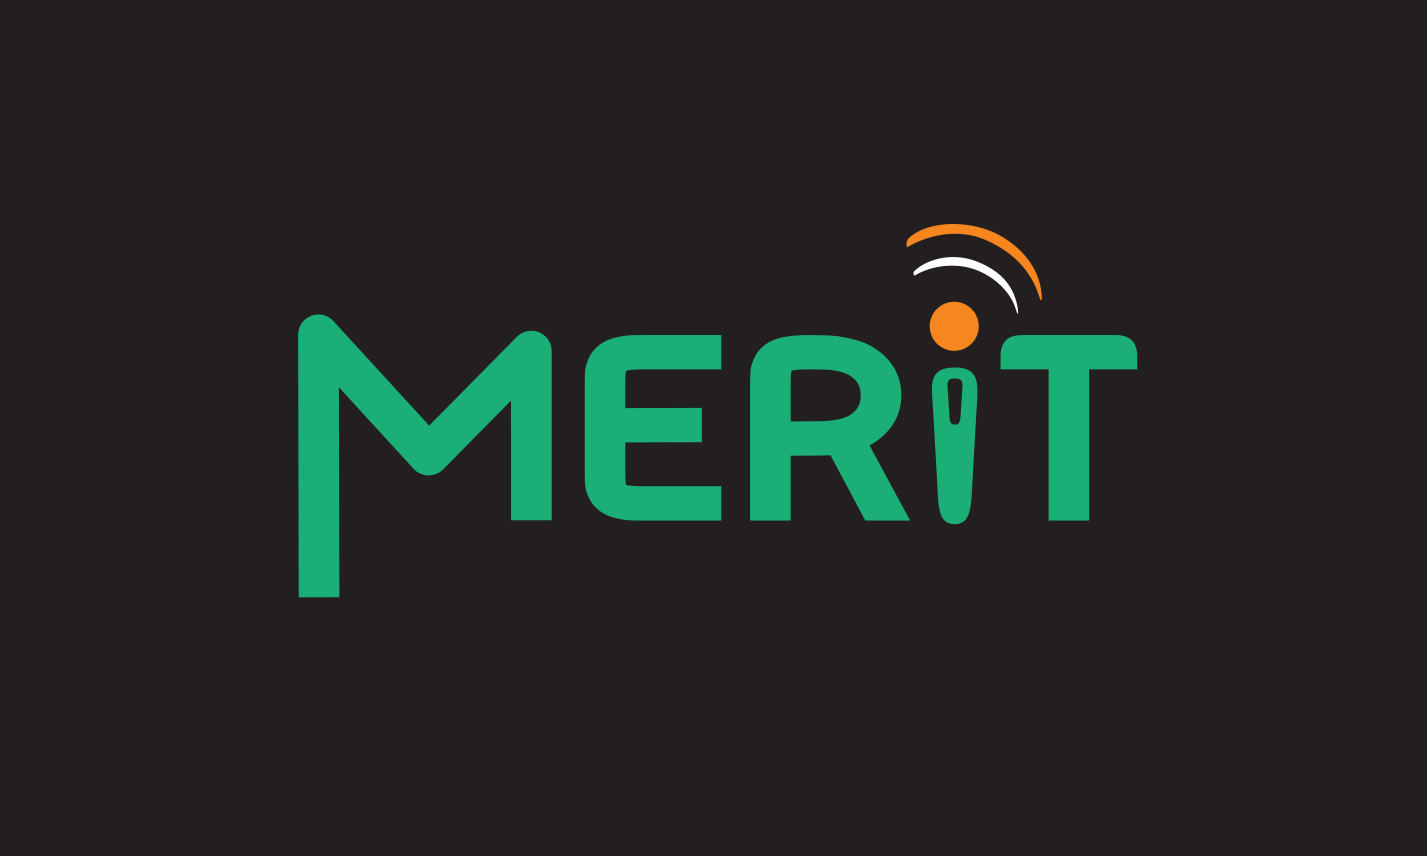 MERIT Summit 2017: The keys to personalize learning